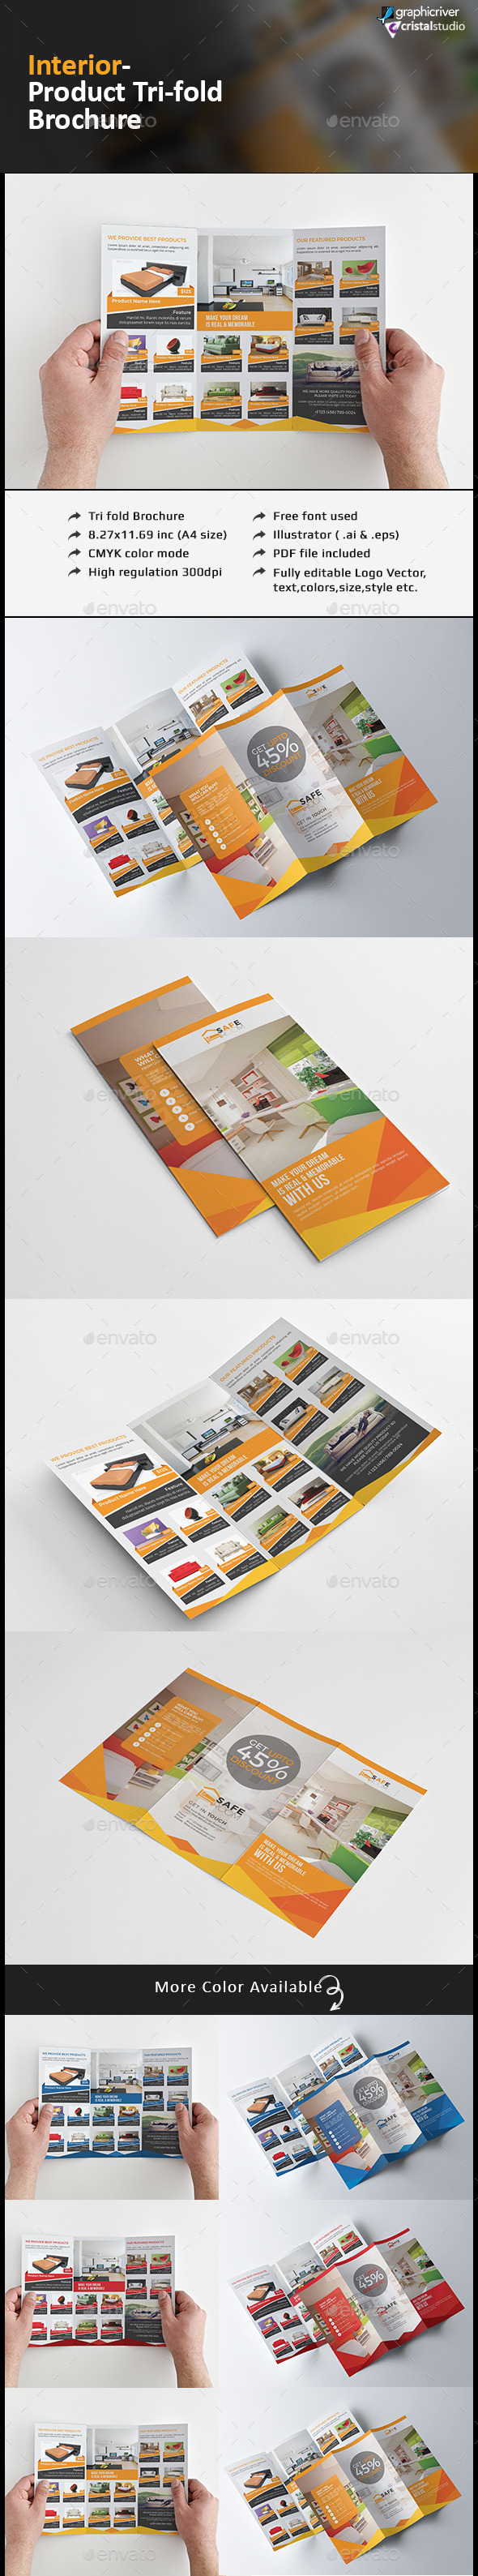 Interior Product Tri fold Brochure - Corporate Brochures